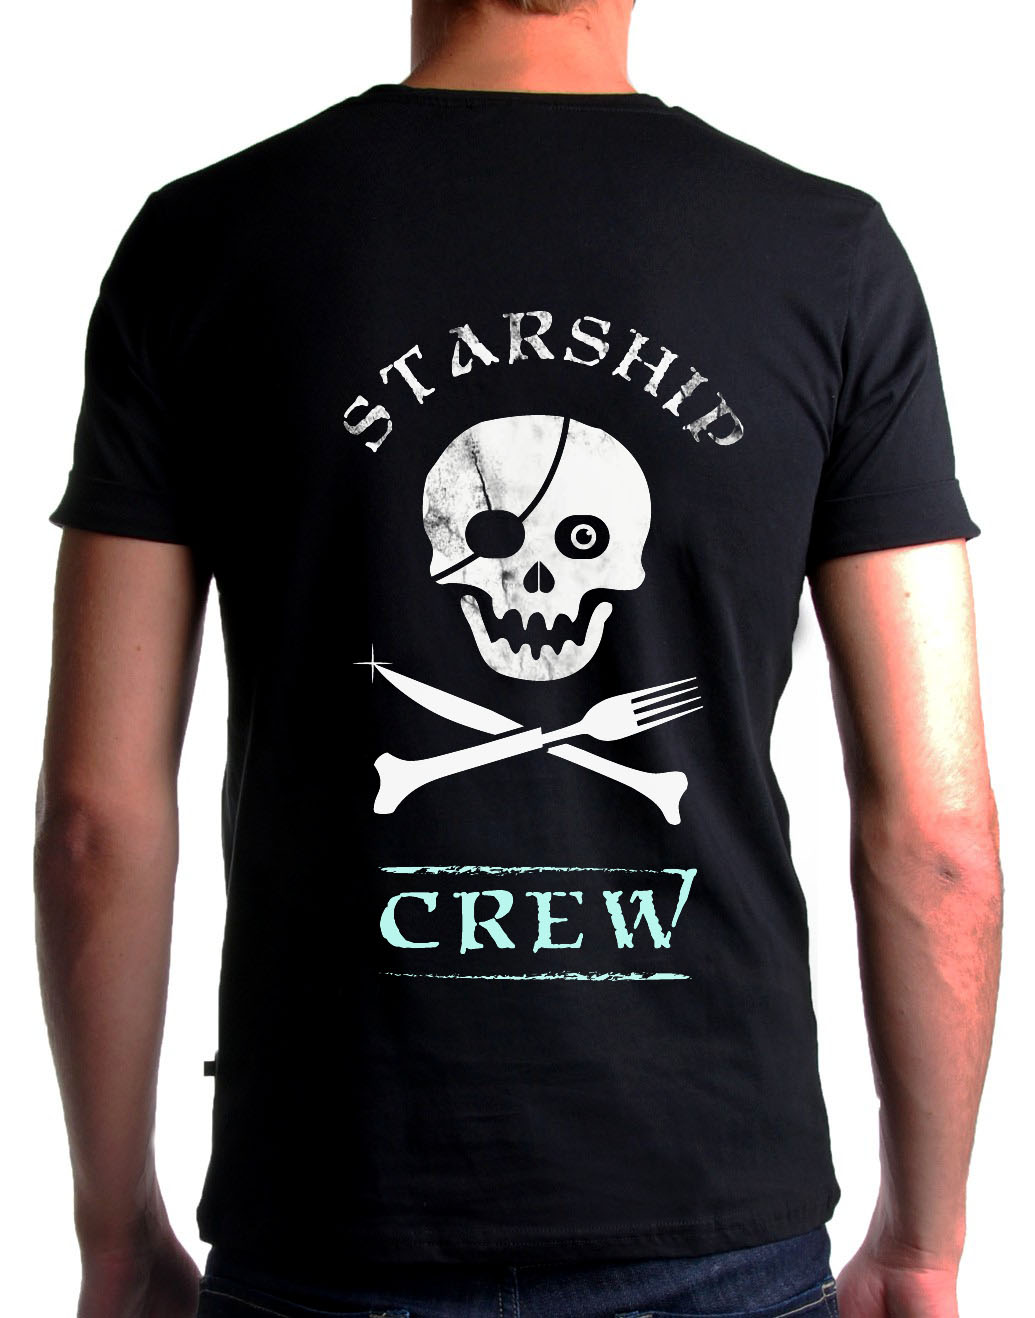 Starship Cooker t shirt